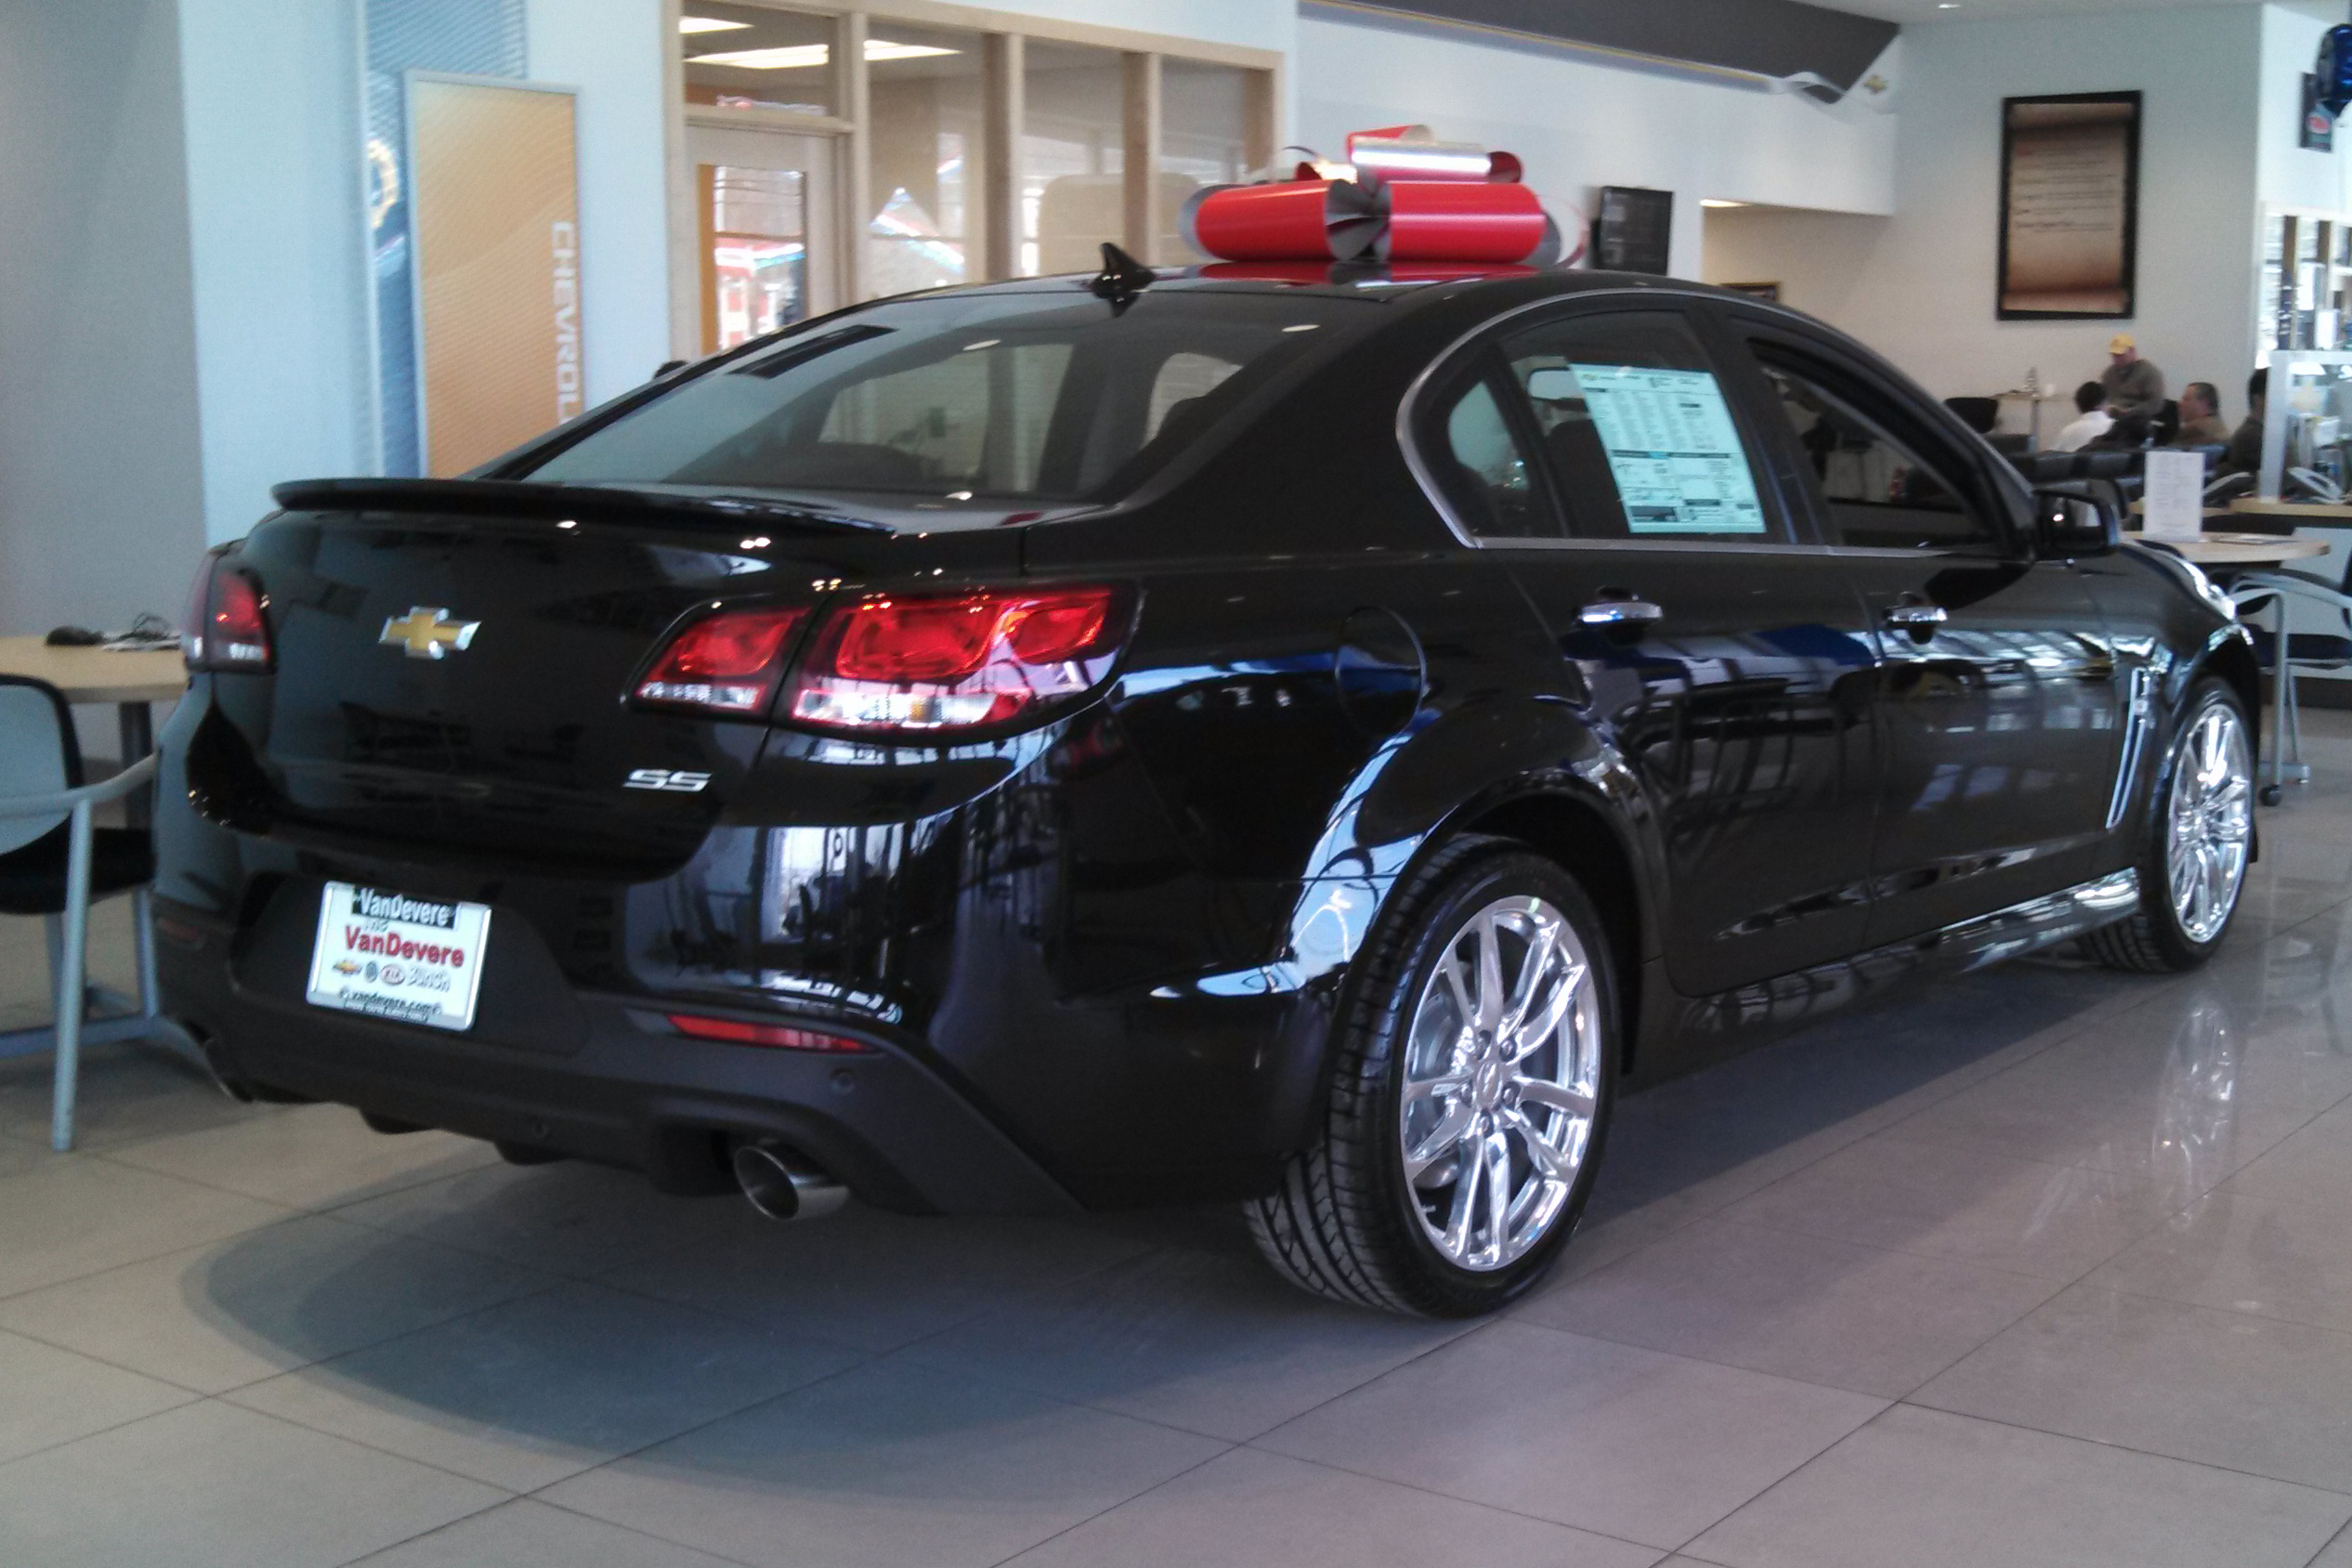 High Quality 2014 Chevy Chevrolet SS Sedan At VanDevere Chevrolet In Akron Ohio 5